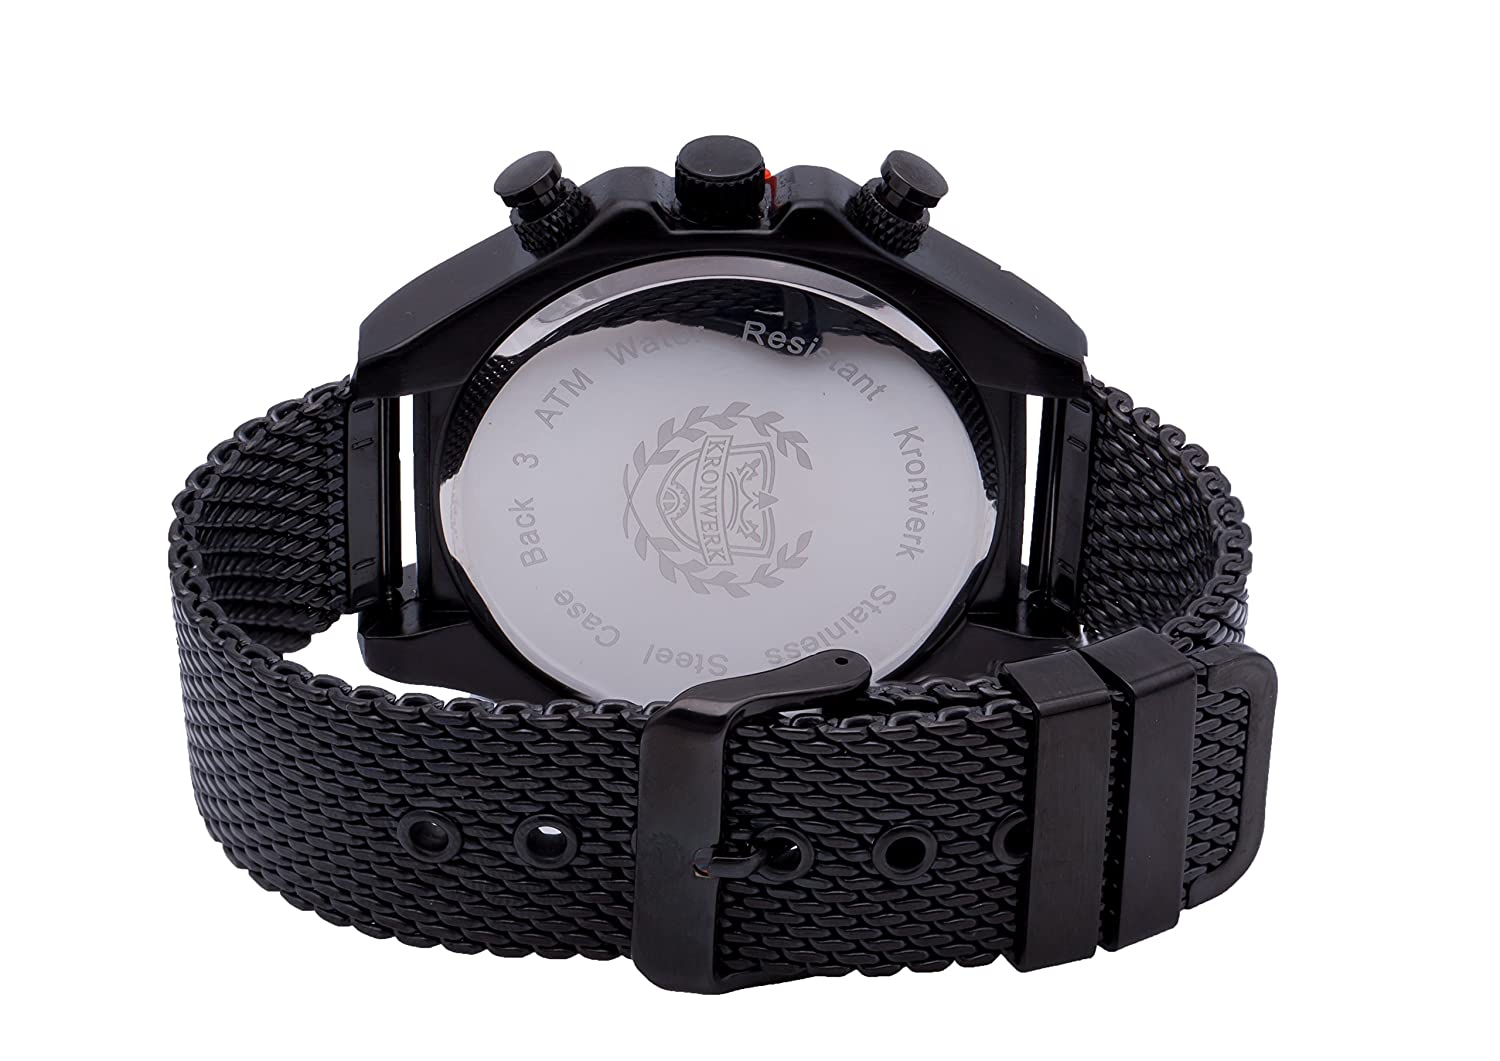 Amazon.com: ShoppeWatch Mens Watch Reloj Black Mesh Band Large Face Multifunction Day Date Sports Edition AQ202827G: Watches